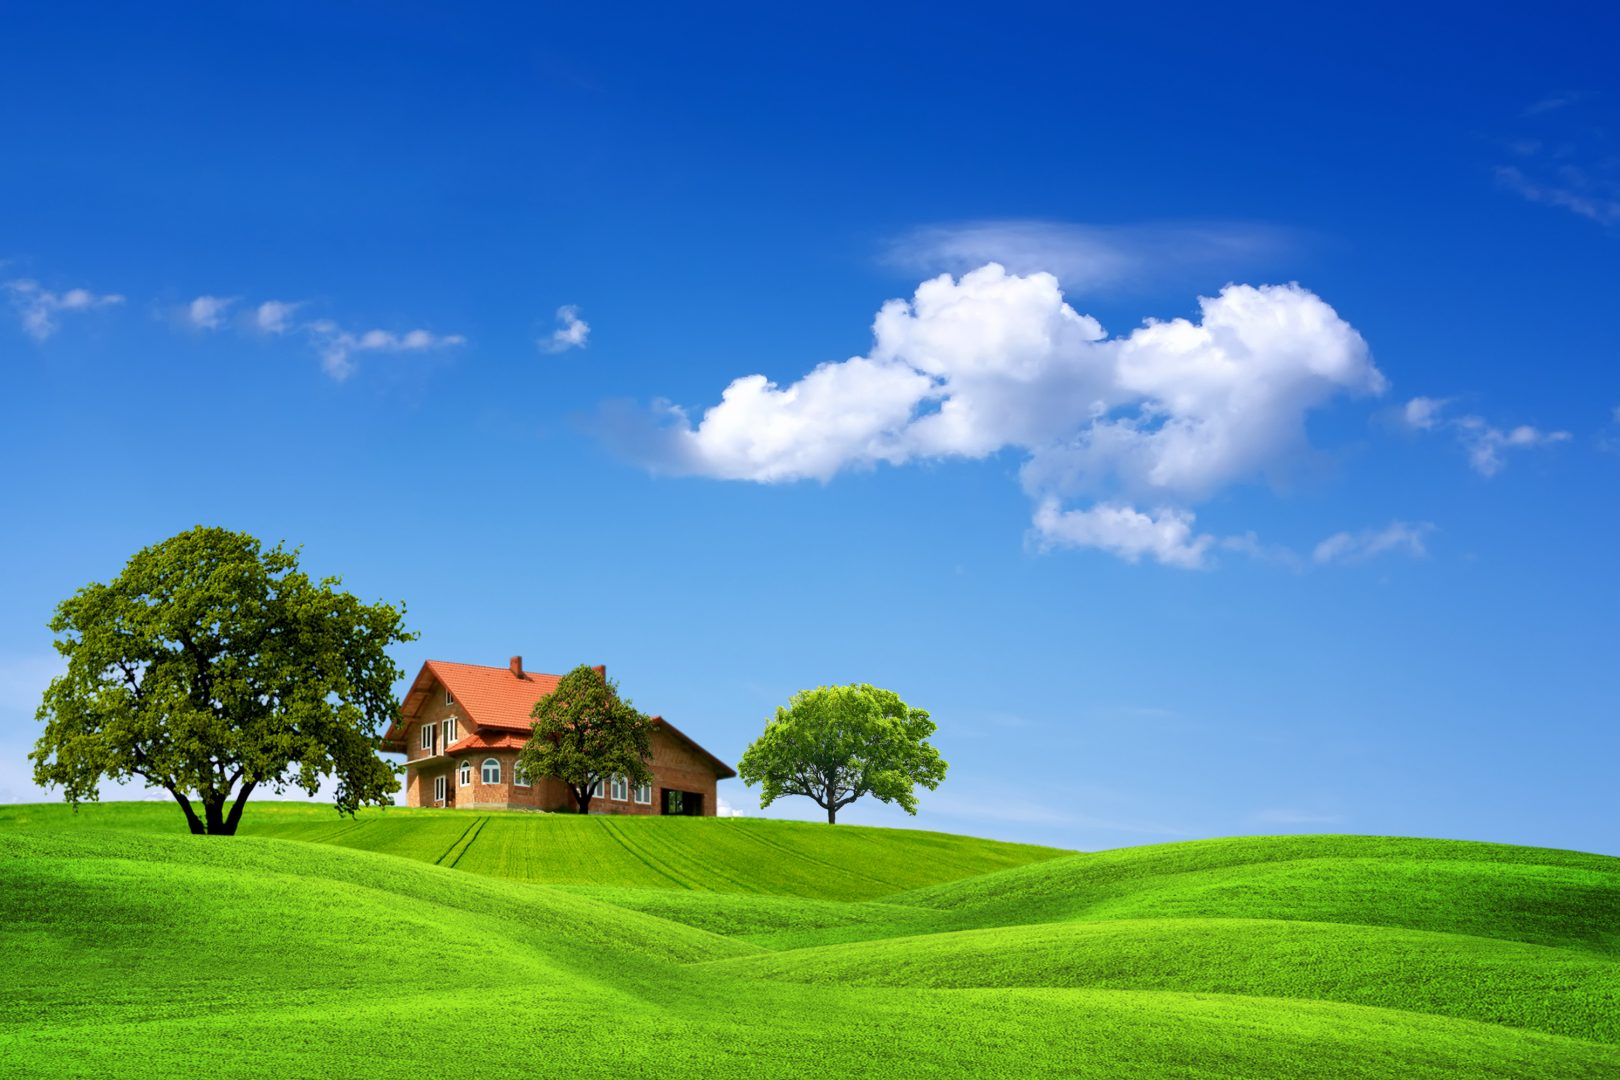 house with trees rolling green grass